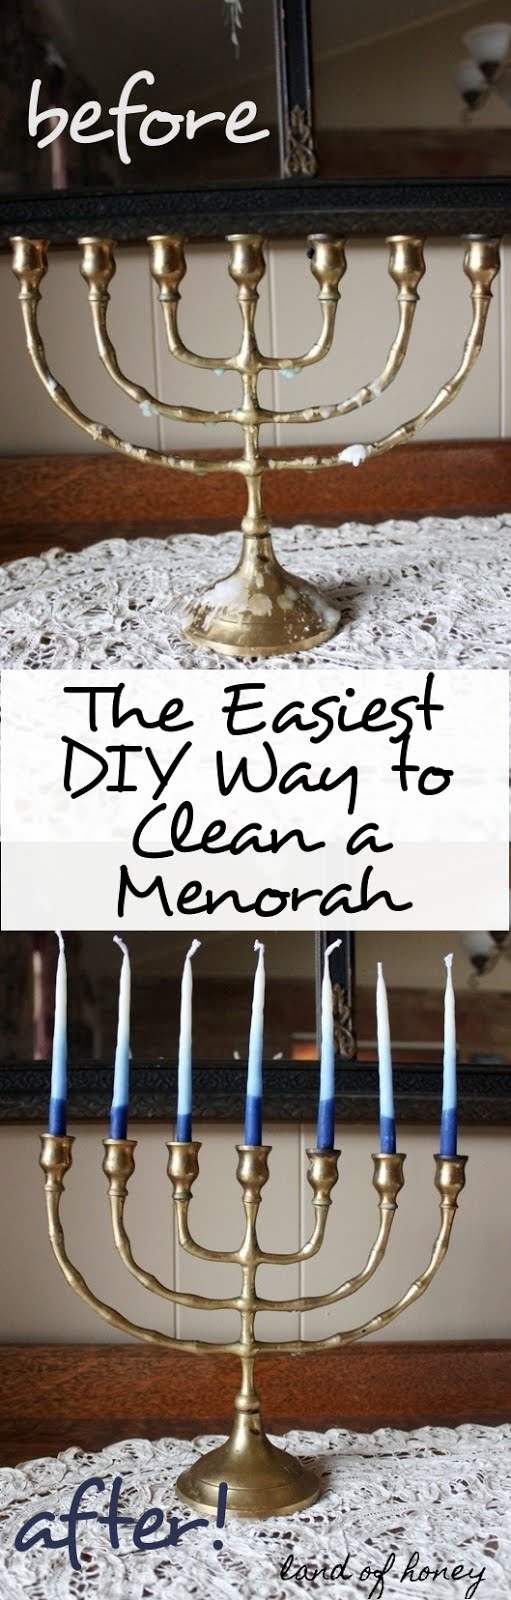 How To Clean a Menorah